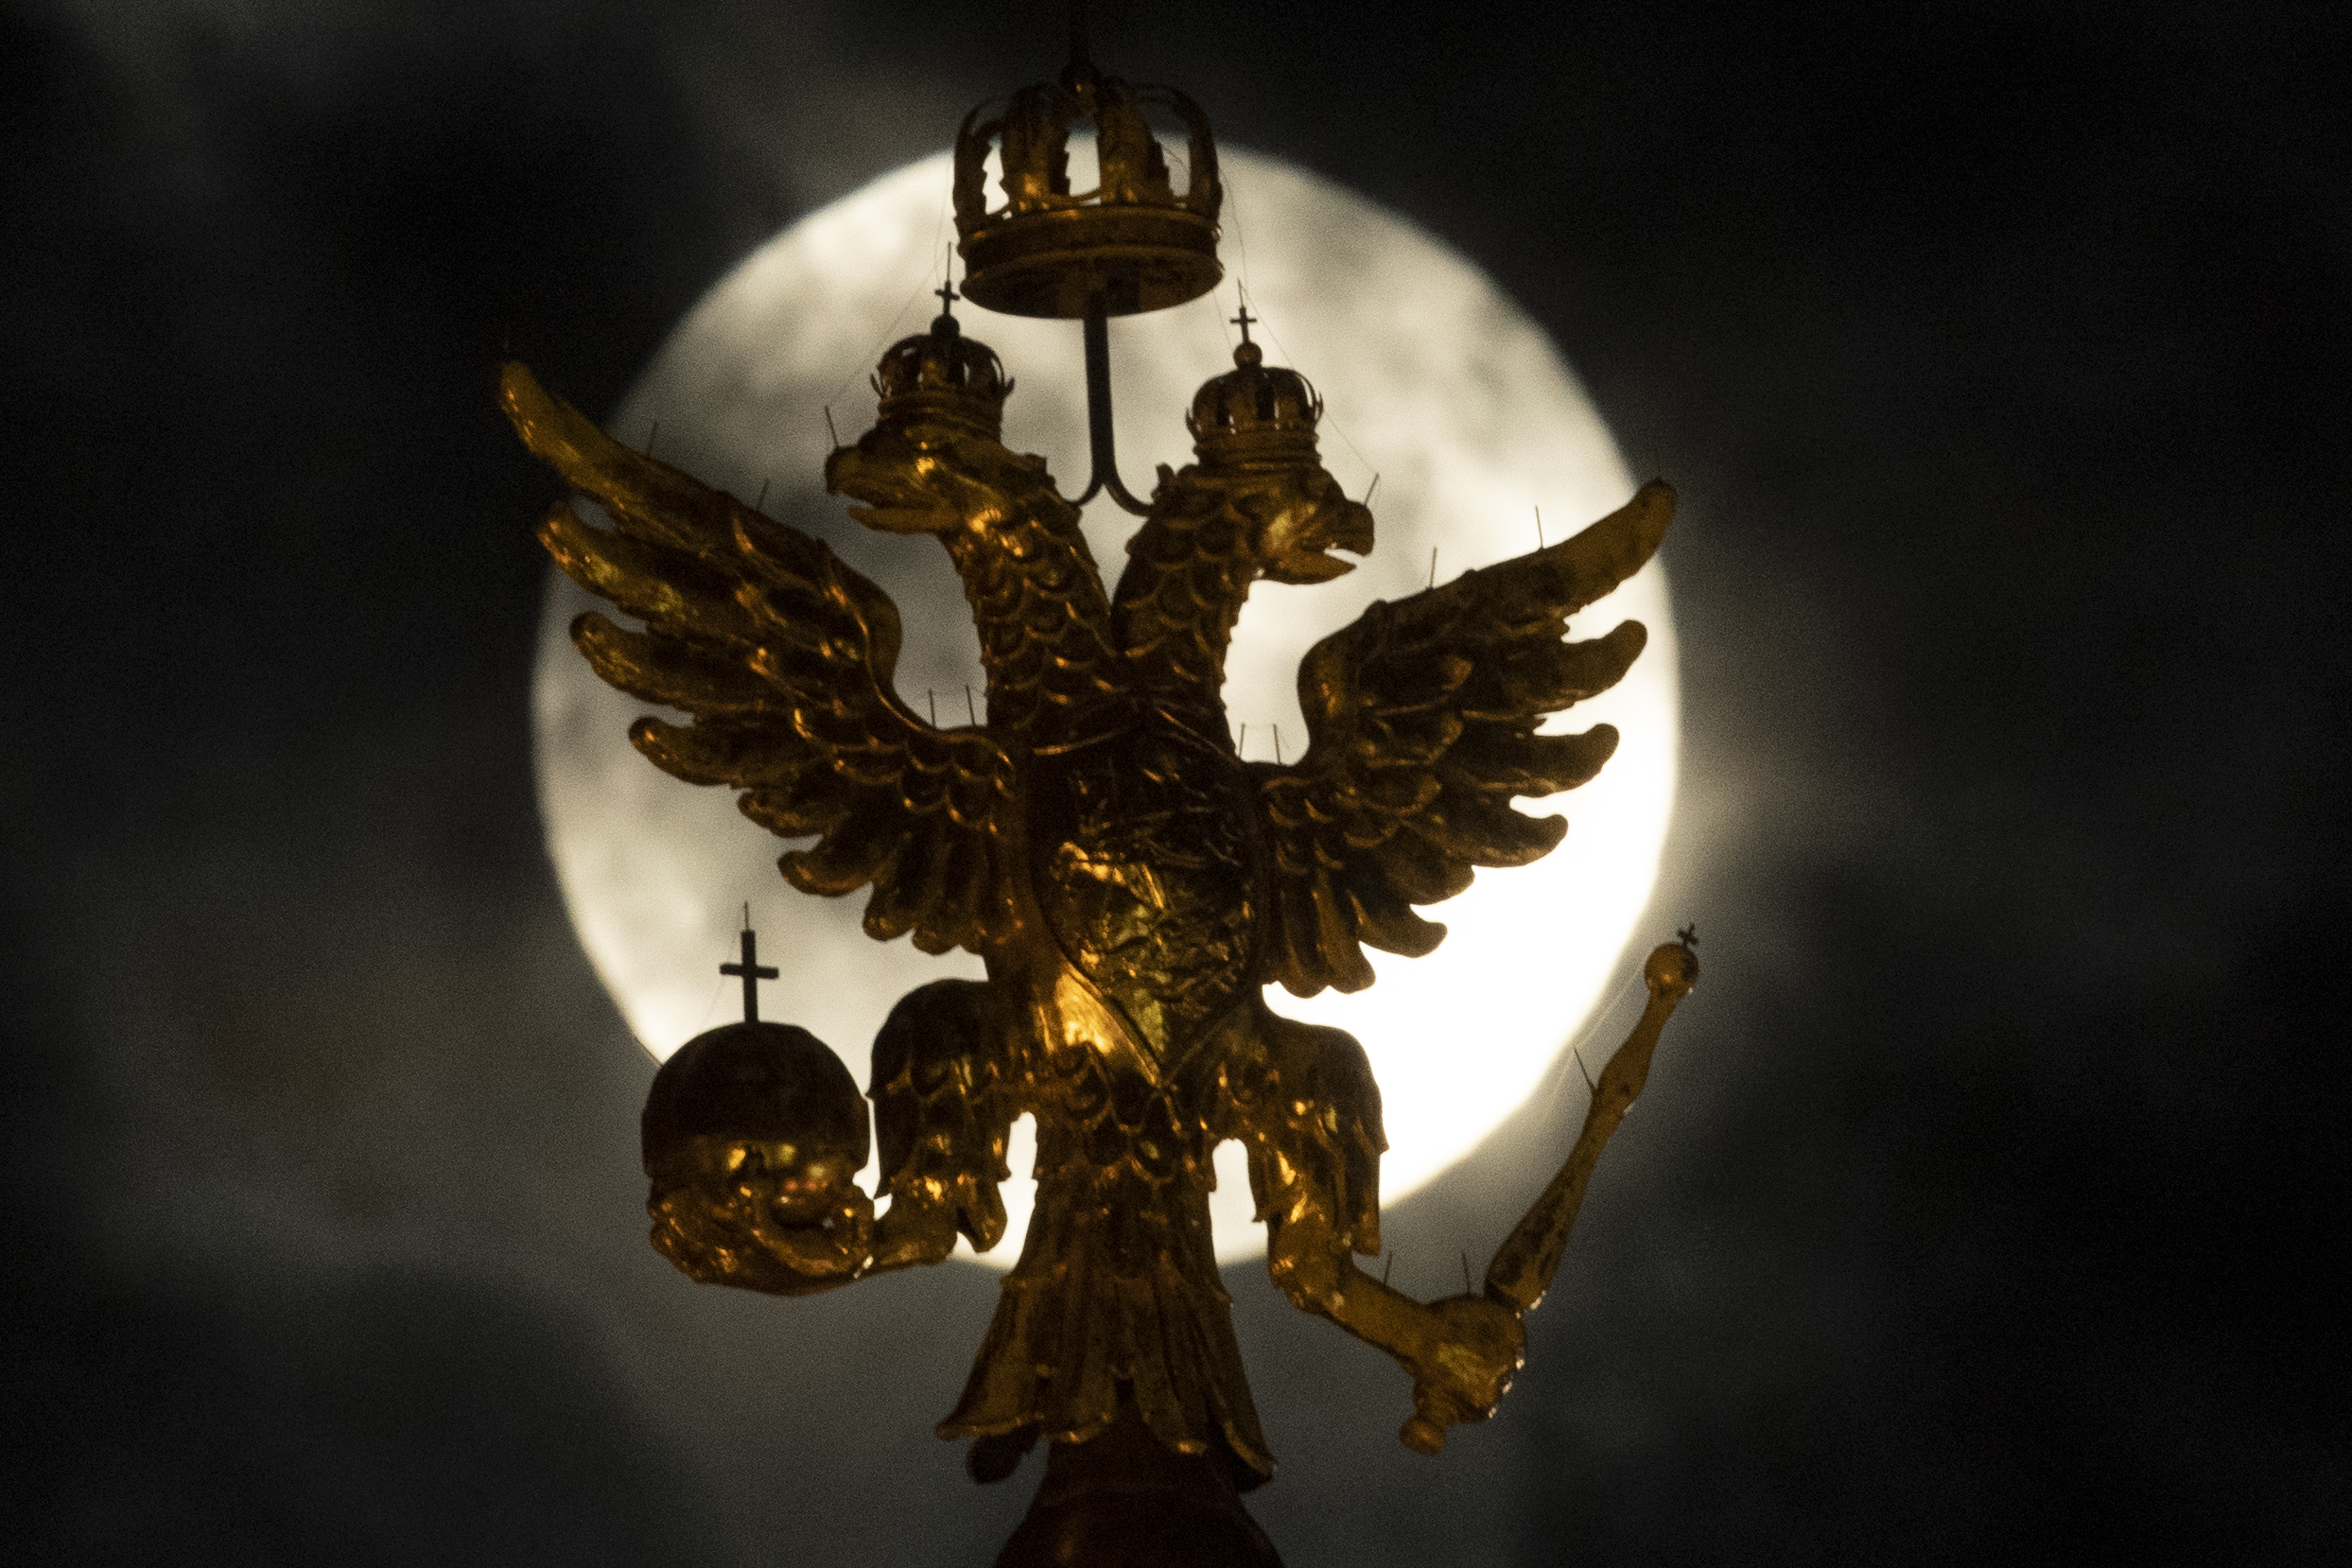 Feb. 19, 2019. Russia's state symbol, the double-headed eagle, is pictured against the full moon, in Moscow, Russia.